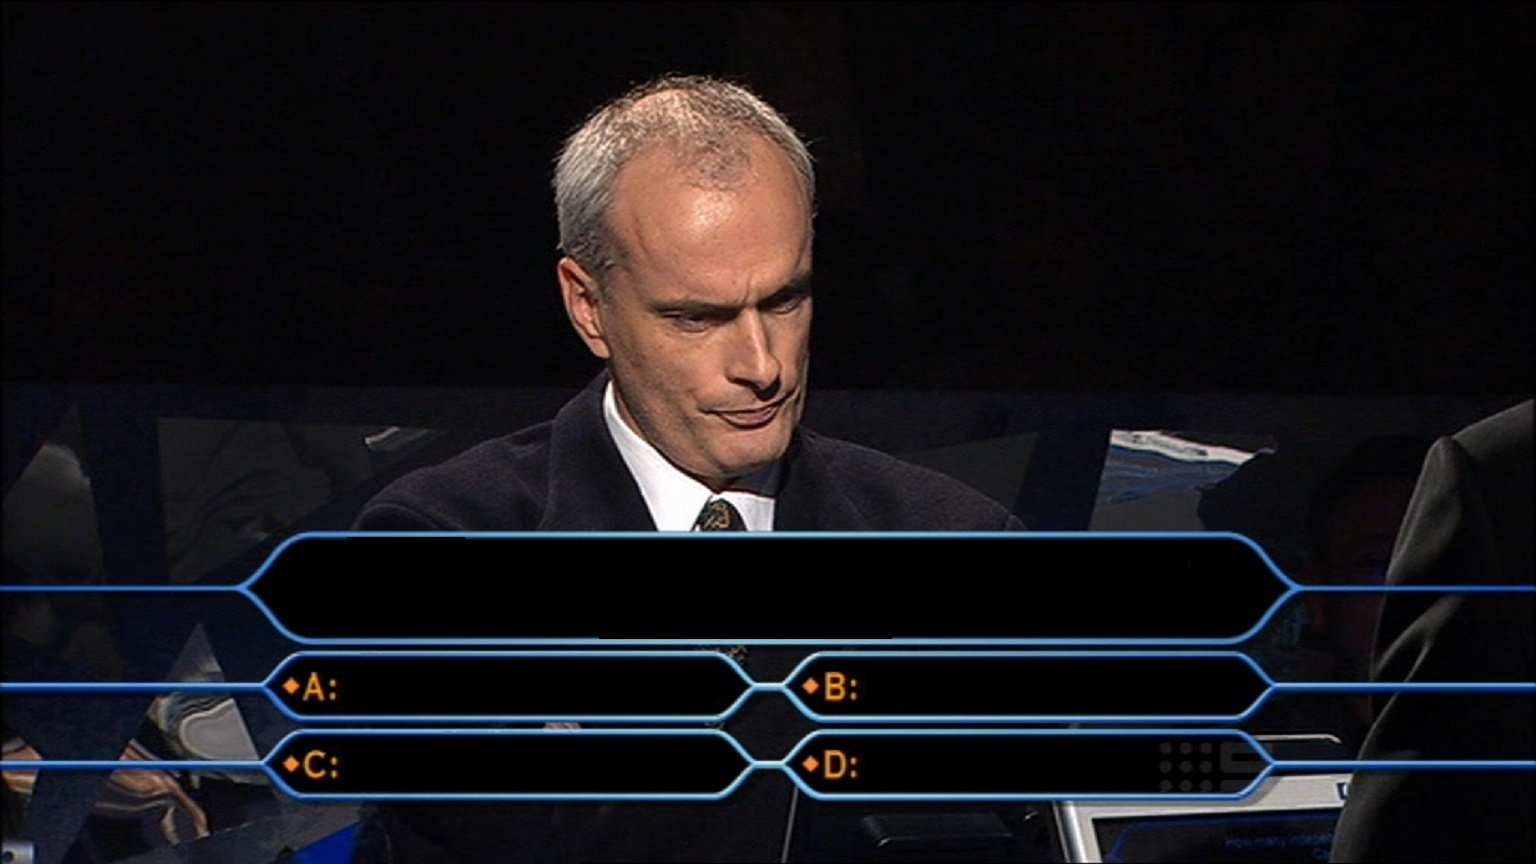 Who Wants To Be A Millionaire Meme Generator Imgflip - Who wants to be a millionaire online template